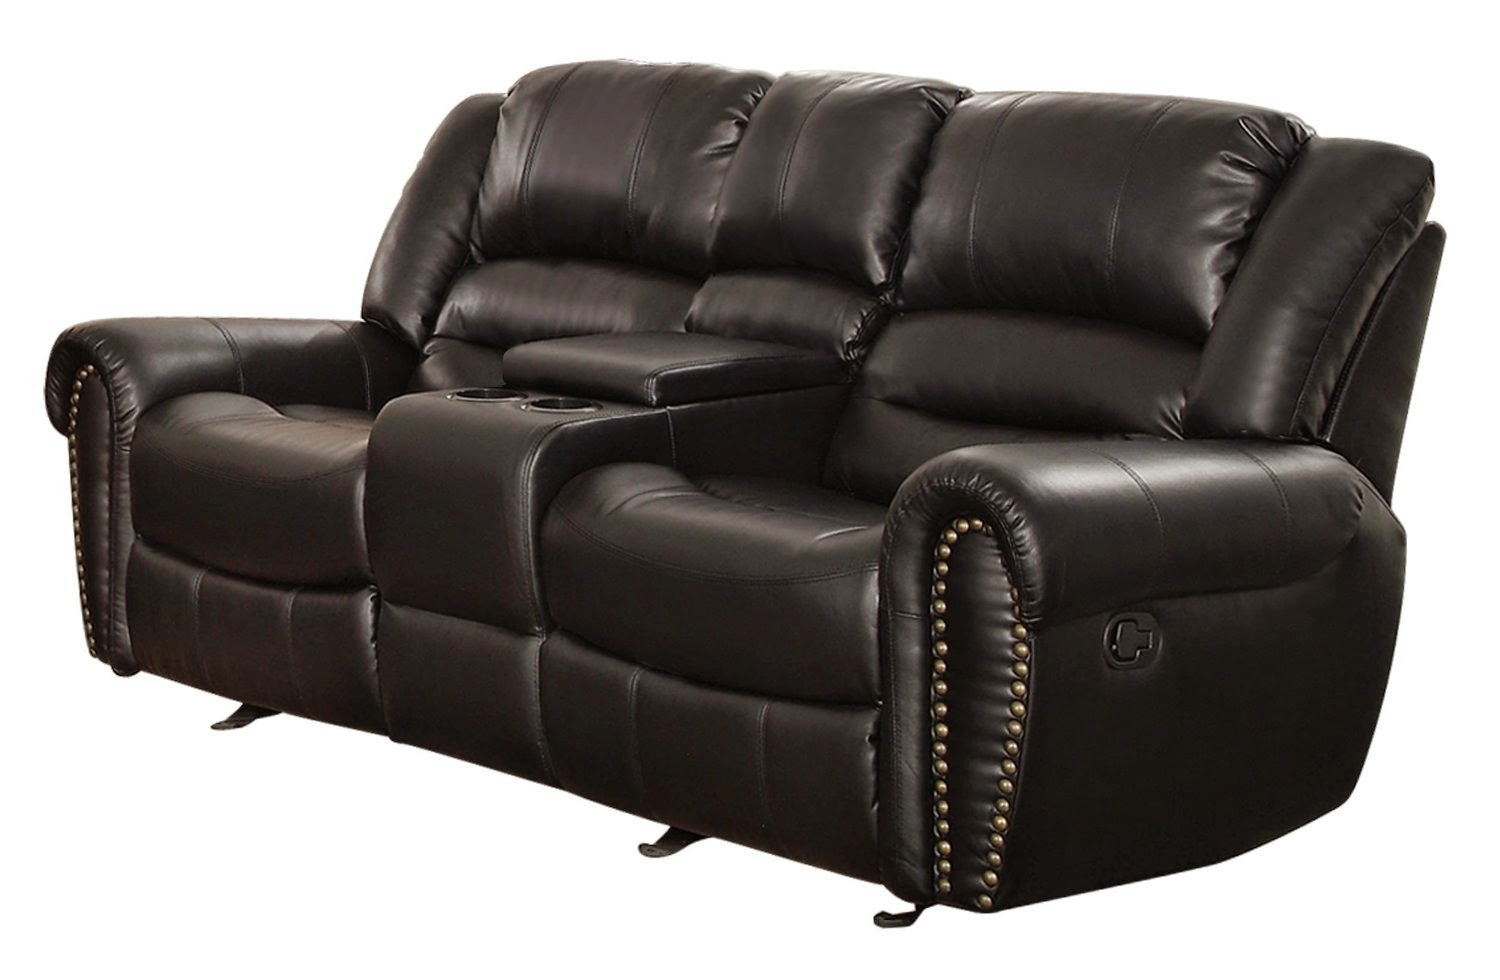 Leather Loveseat Reclining Sofa Loveseat And Chair Sets March 2015